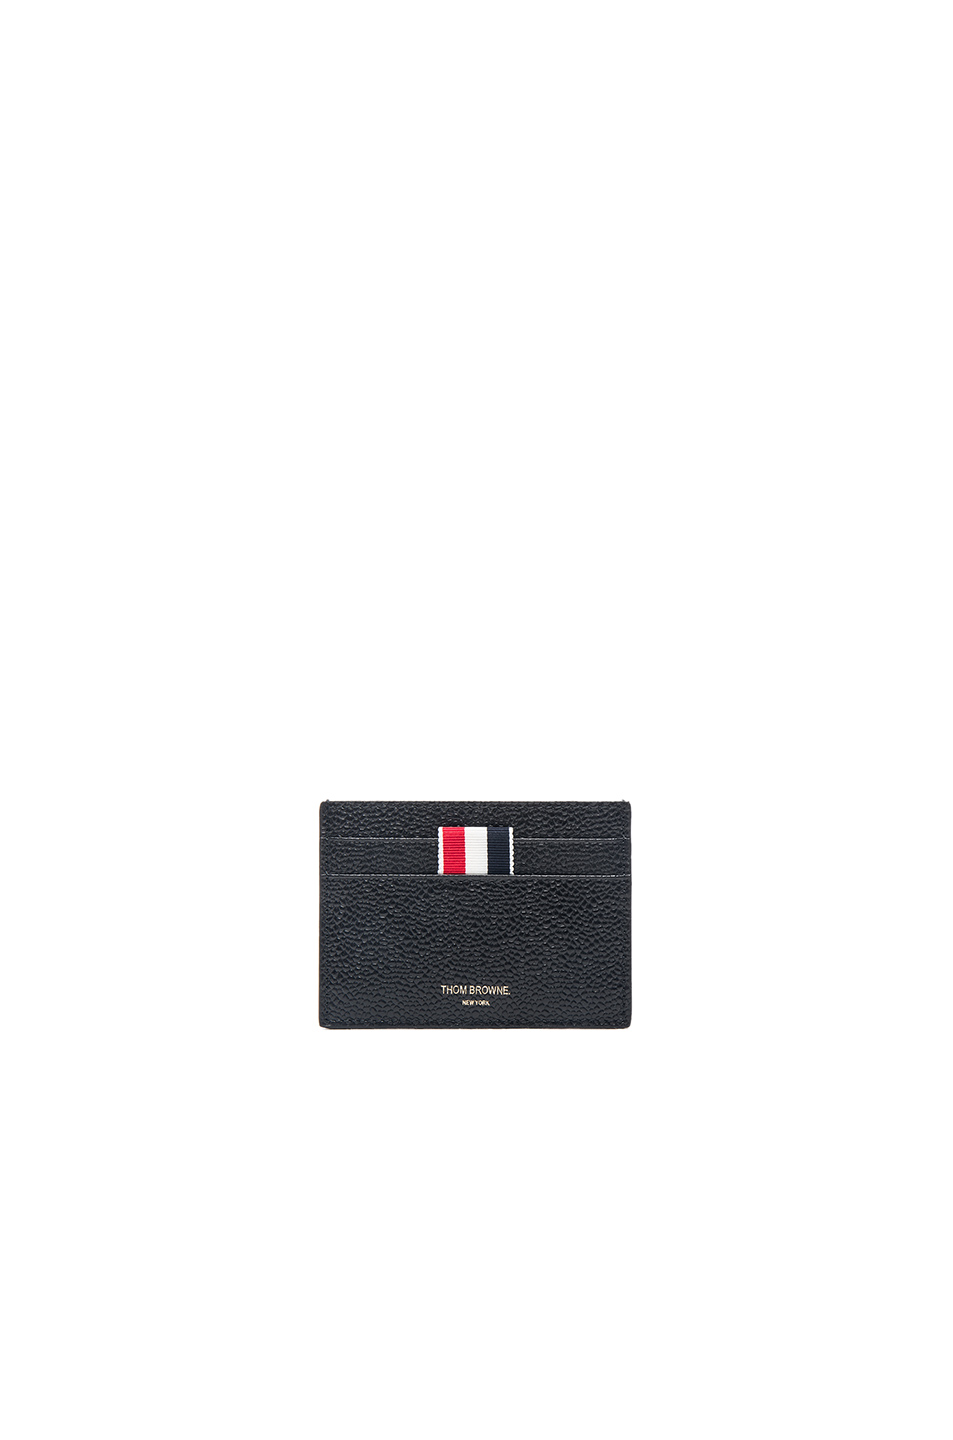 Thom Browne Striped Grosgrain-Trimmed Pebble-Grain Leather Cardholder In Black